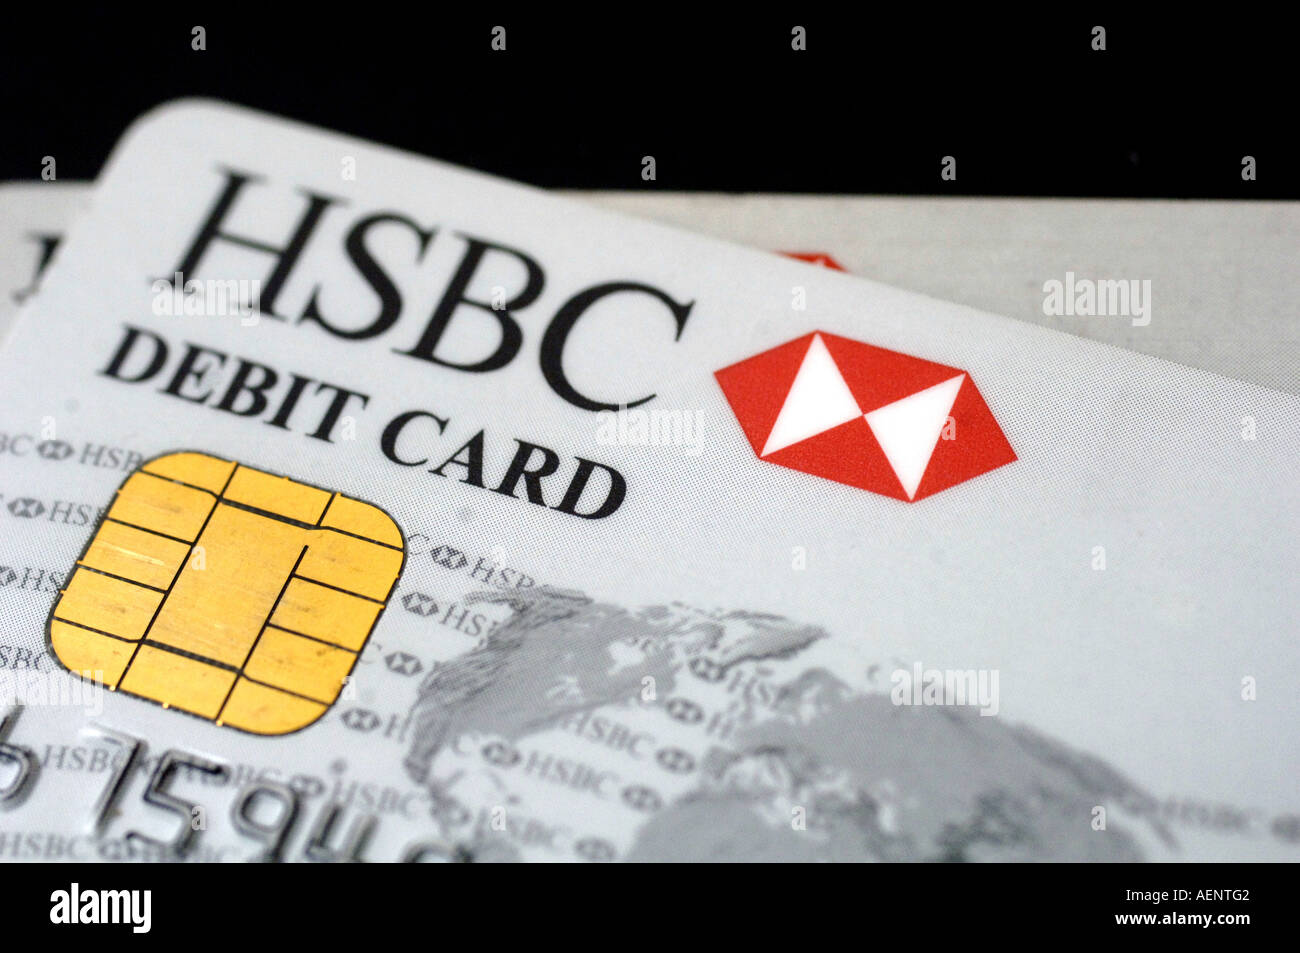 Carte Debit Hsbc Canada.Hsbc Debit Card Stock Photo 7844609 Alamy